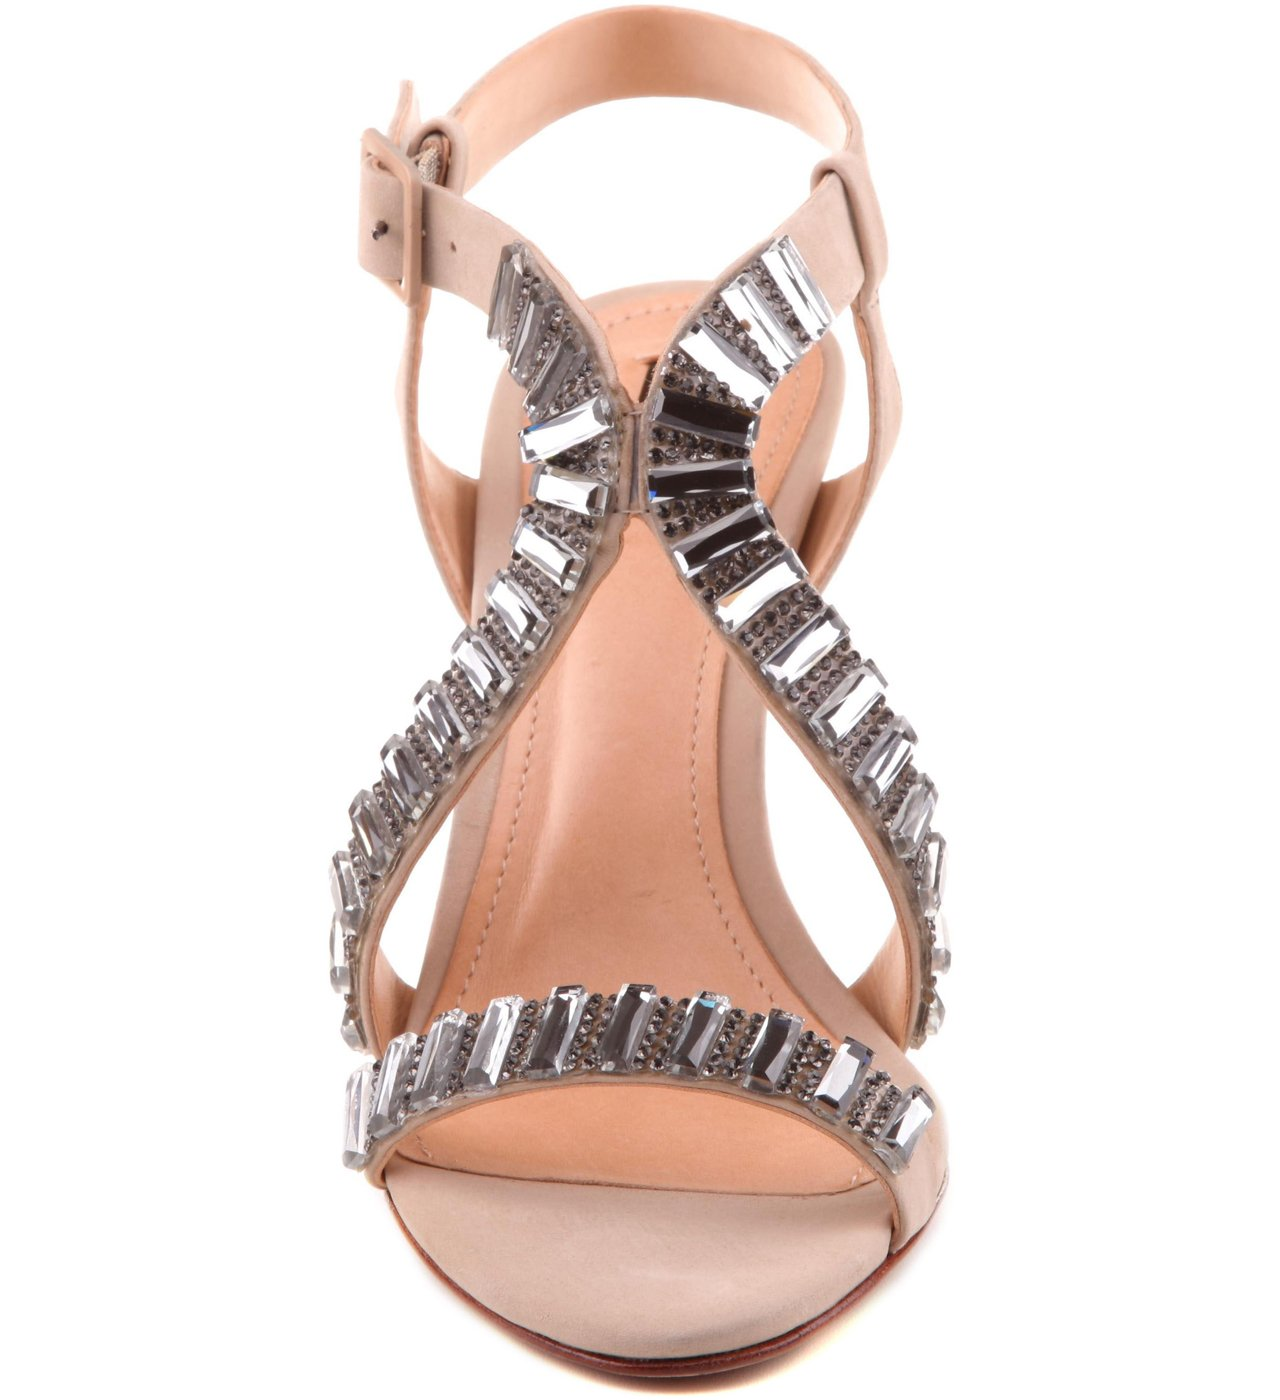 SANDÁLIA STRAPS TOGETHER OYSTER